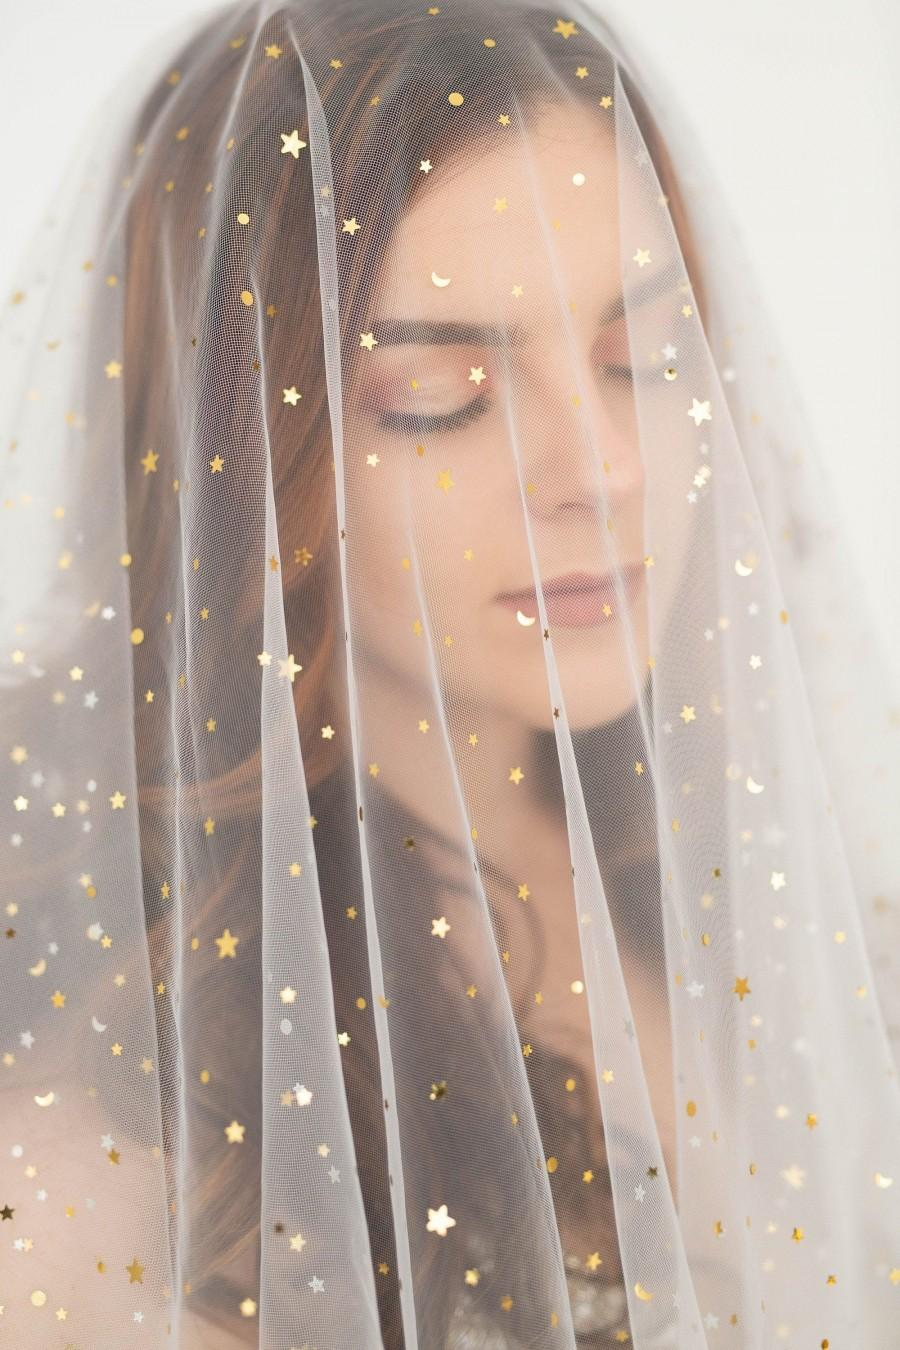 Mariage - Moon and stars veil, Tulle veil with silver and gold moons and stars, statement veil, rock and roll bride, alternative veil, Tulle drop veil